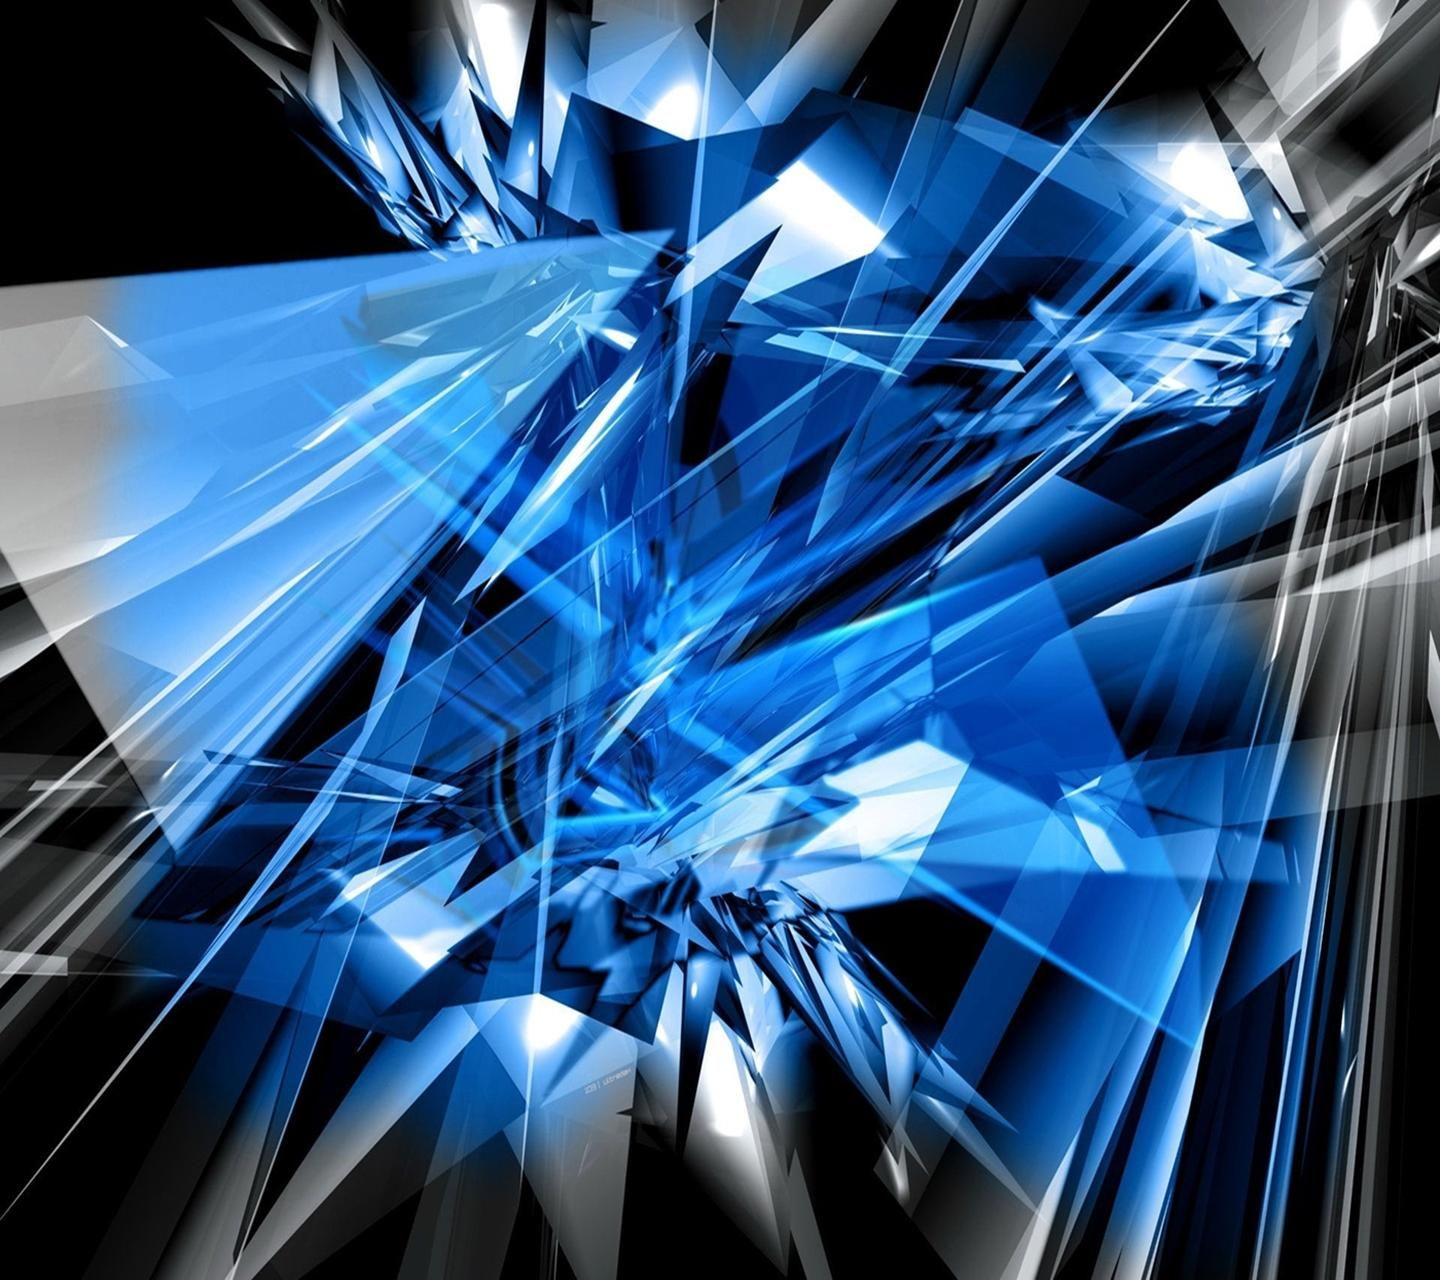 Cool Blue Wallpaper, Abstract, Blue Abstract